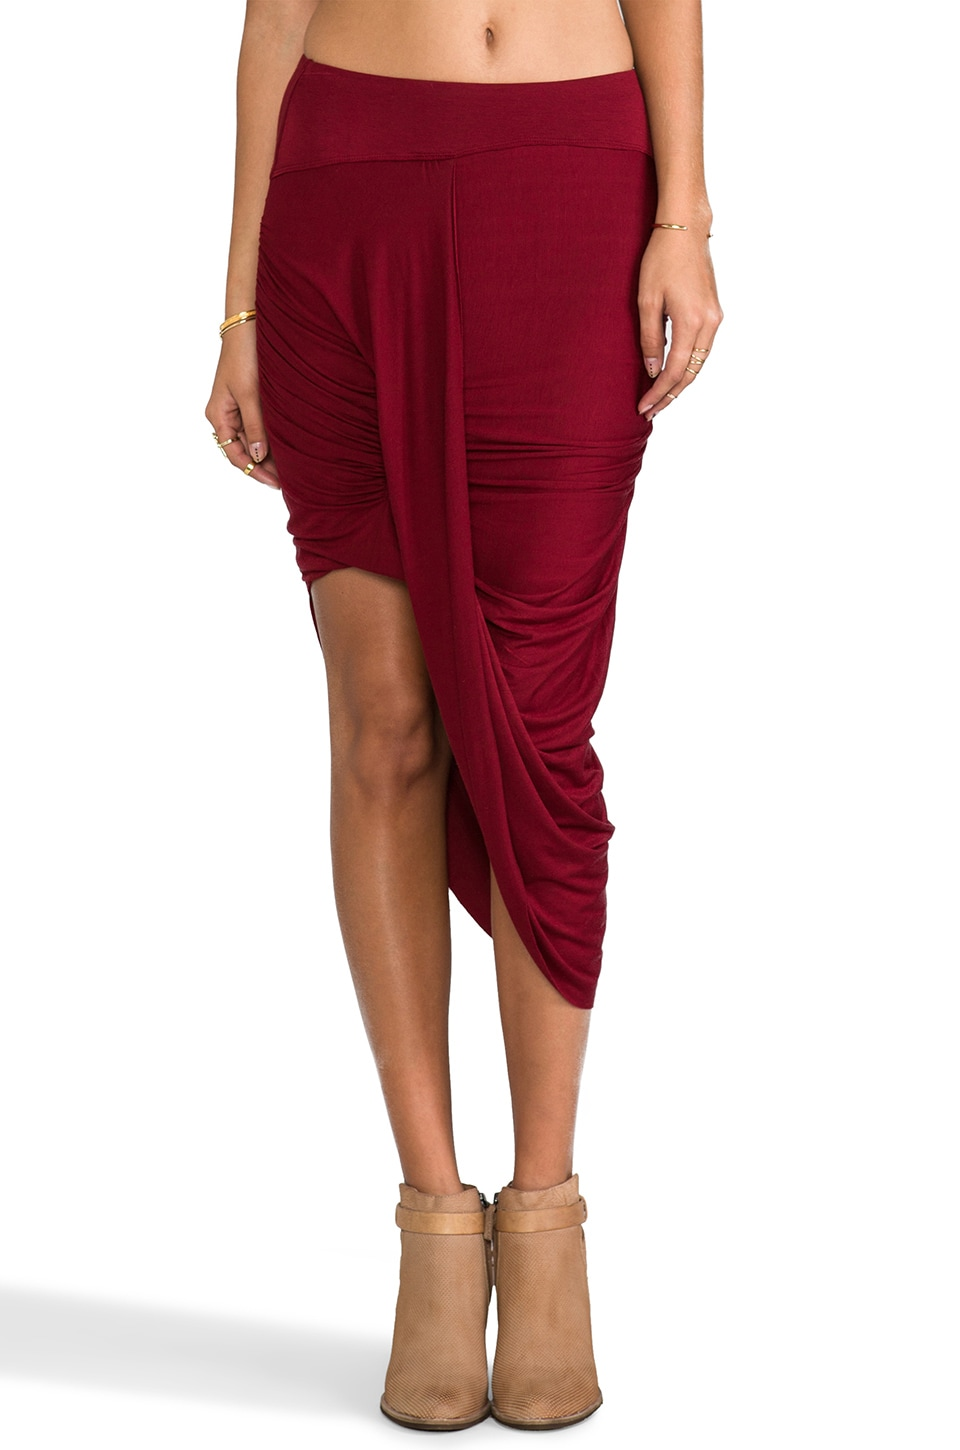 Free People Twist and Shout Skirt in Cranberry